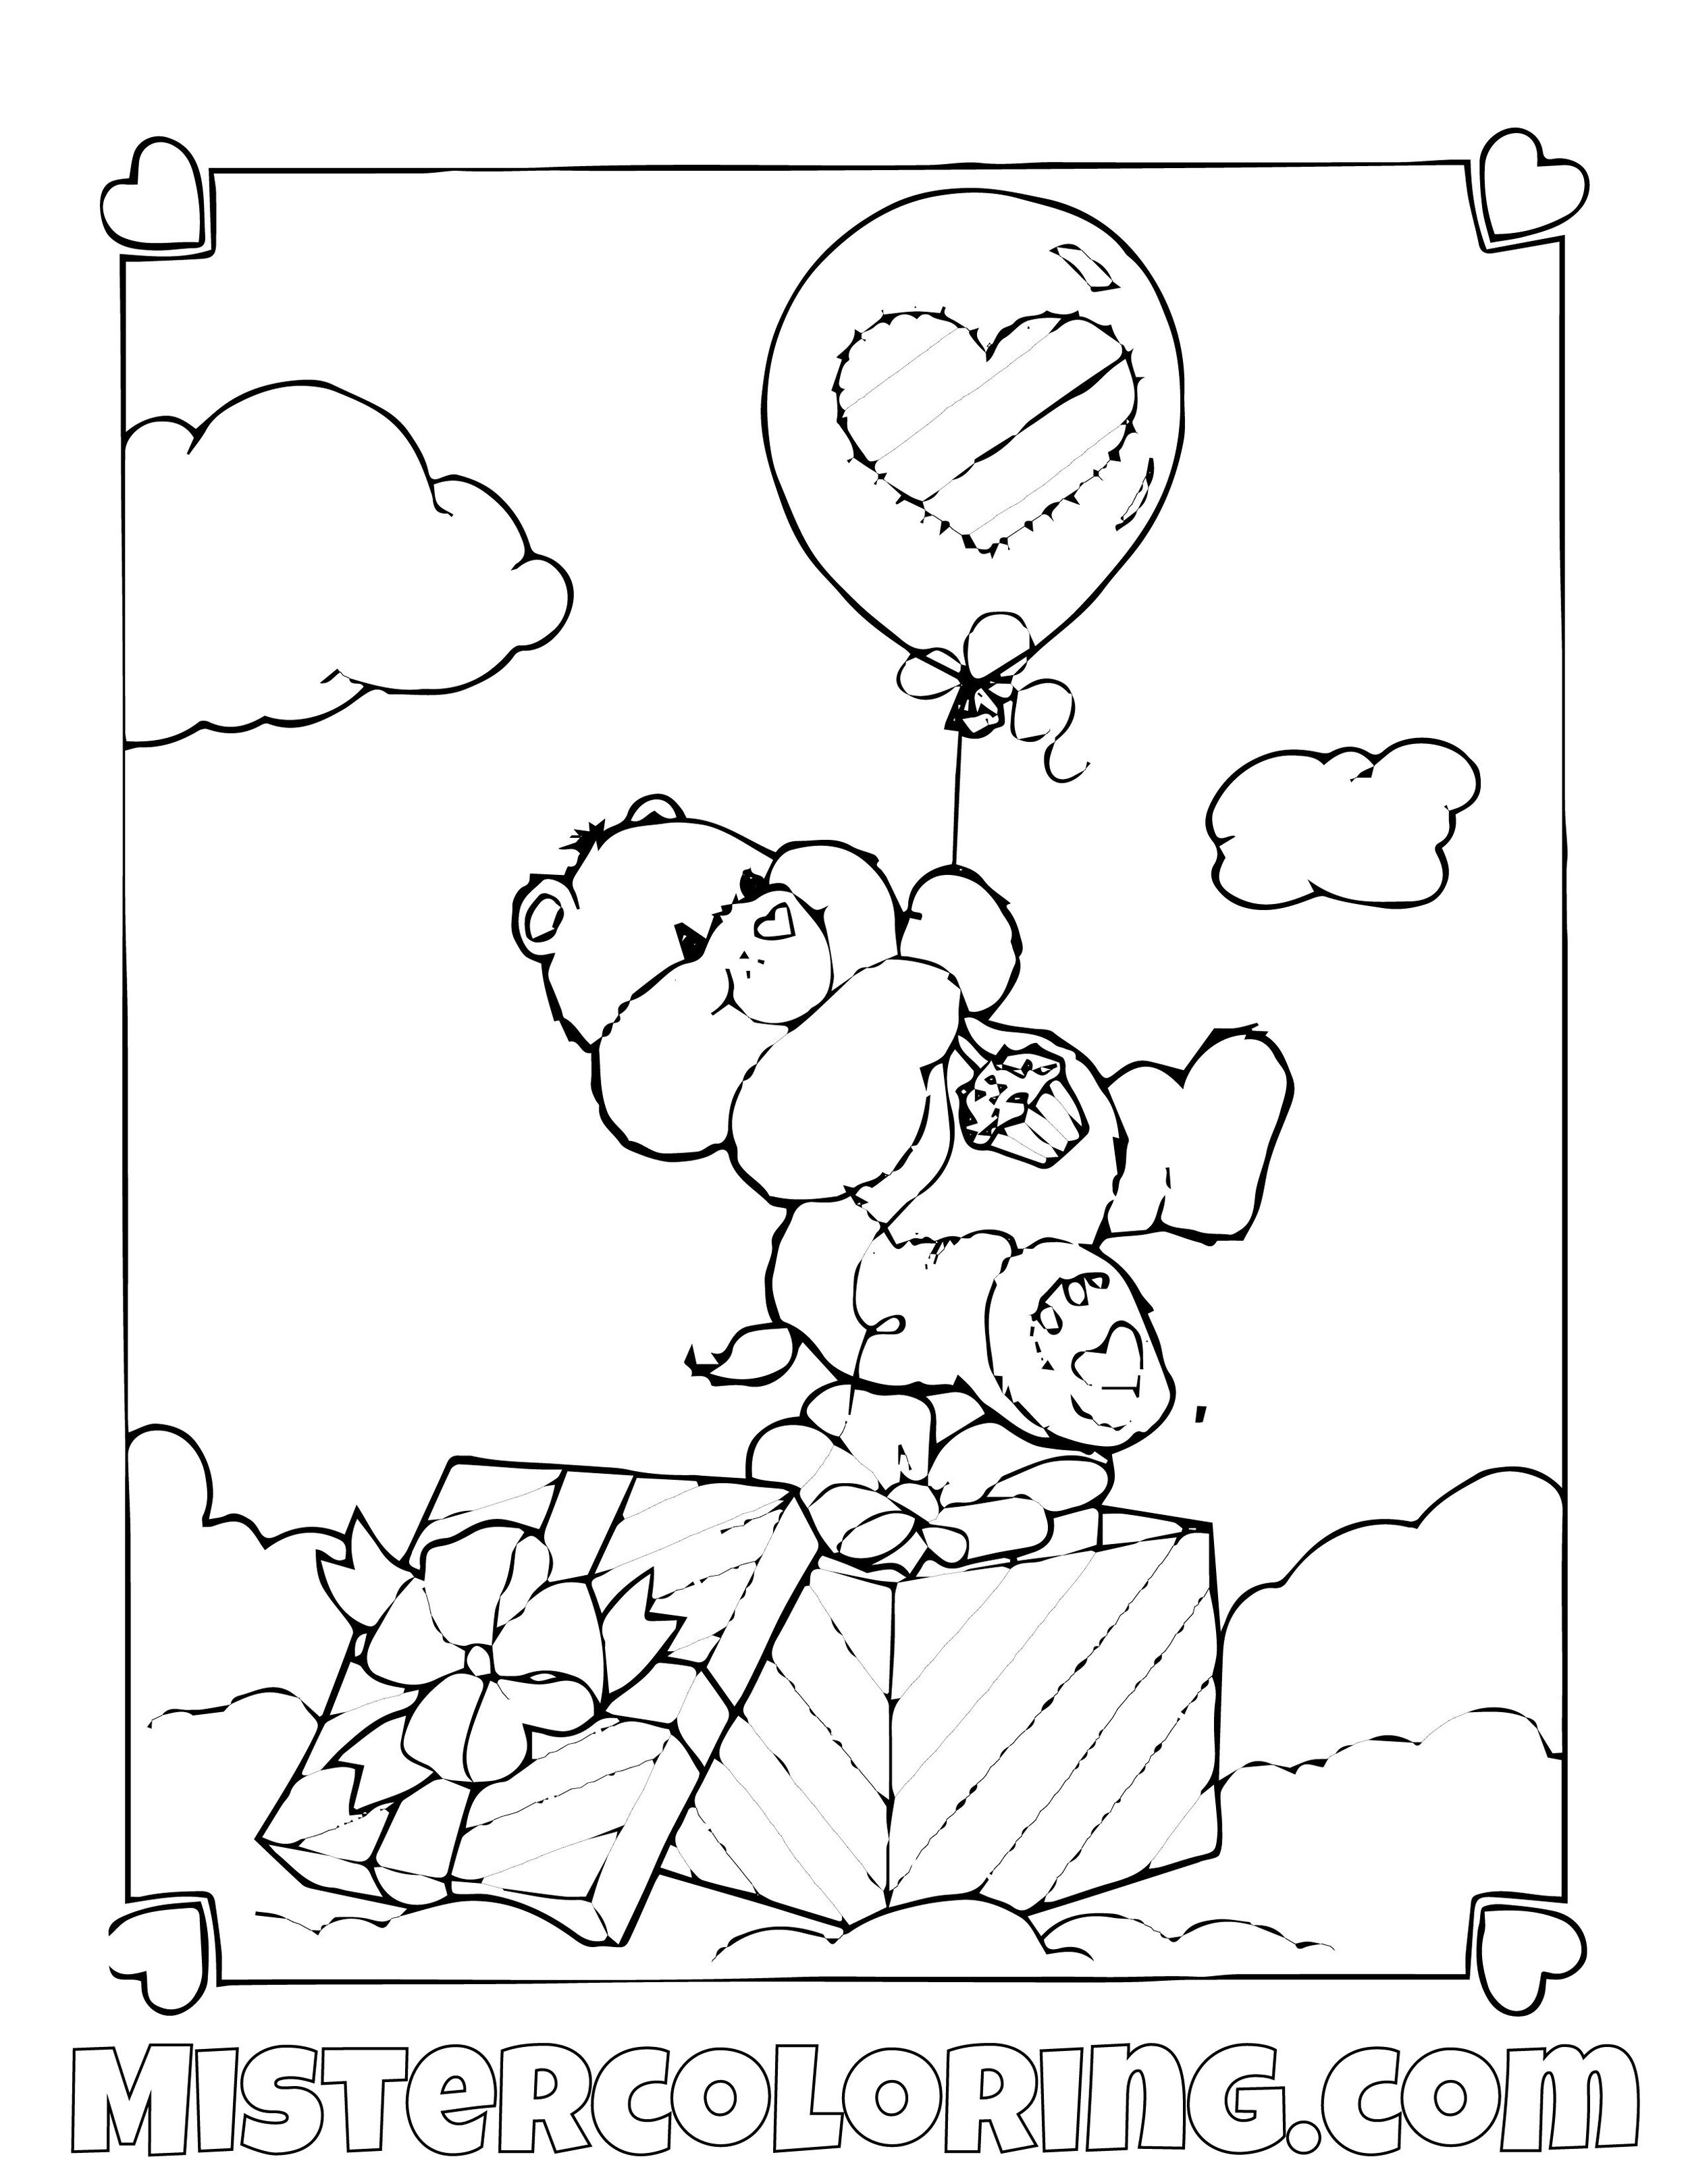 Printable Care Bears Coloring Pages For Kids | 1294x1000